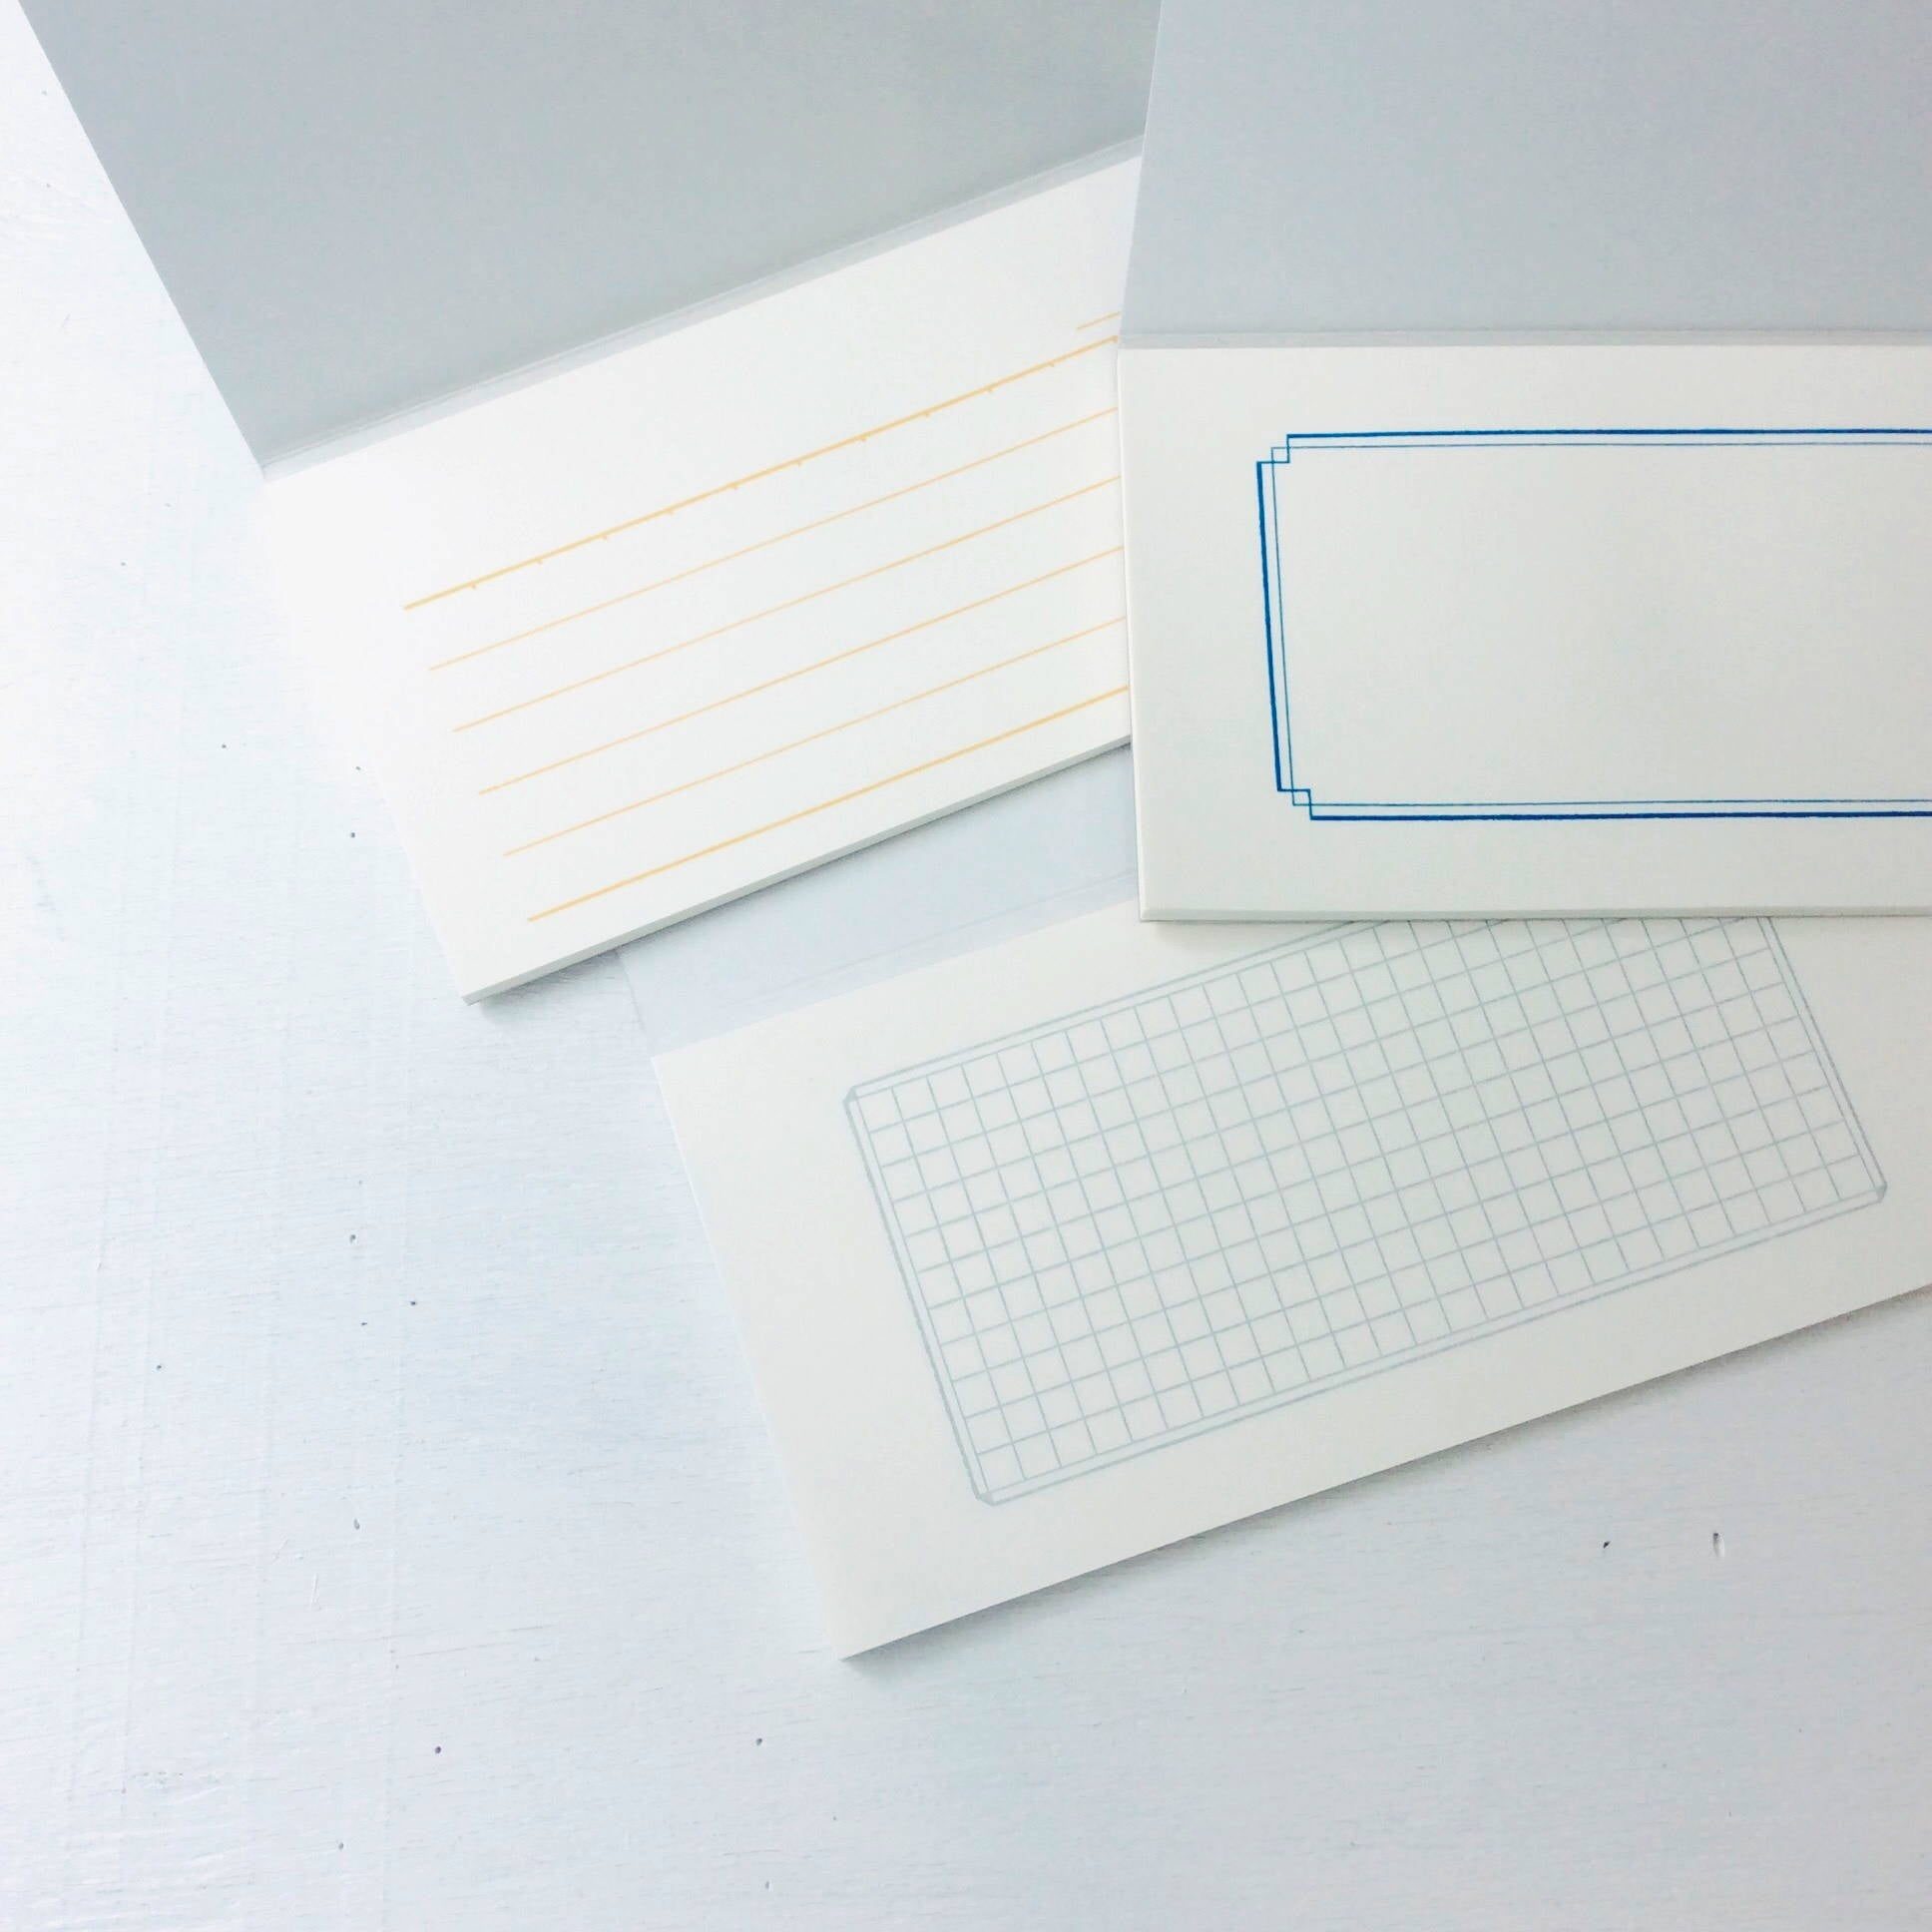 yuruliku Notepad - Ruled